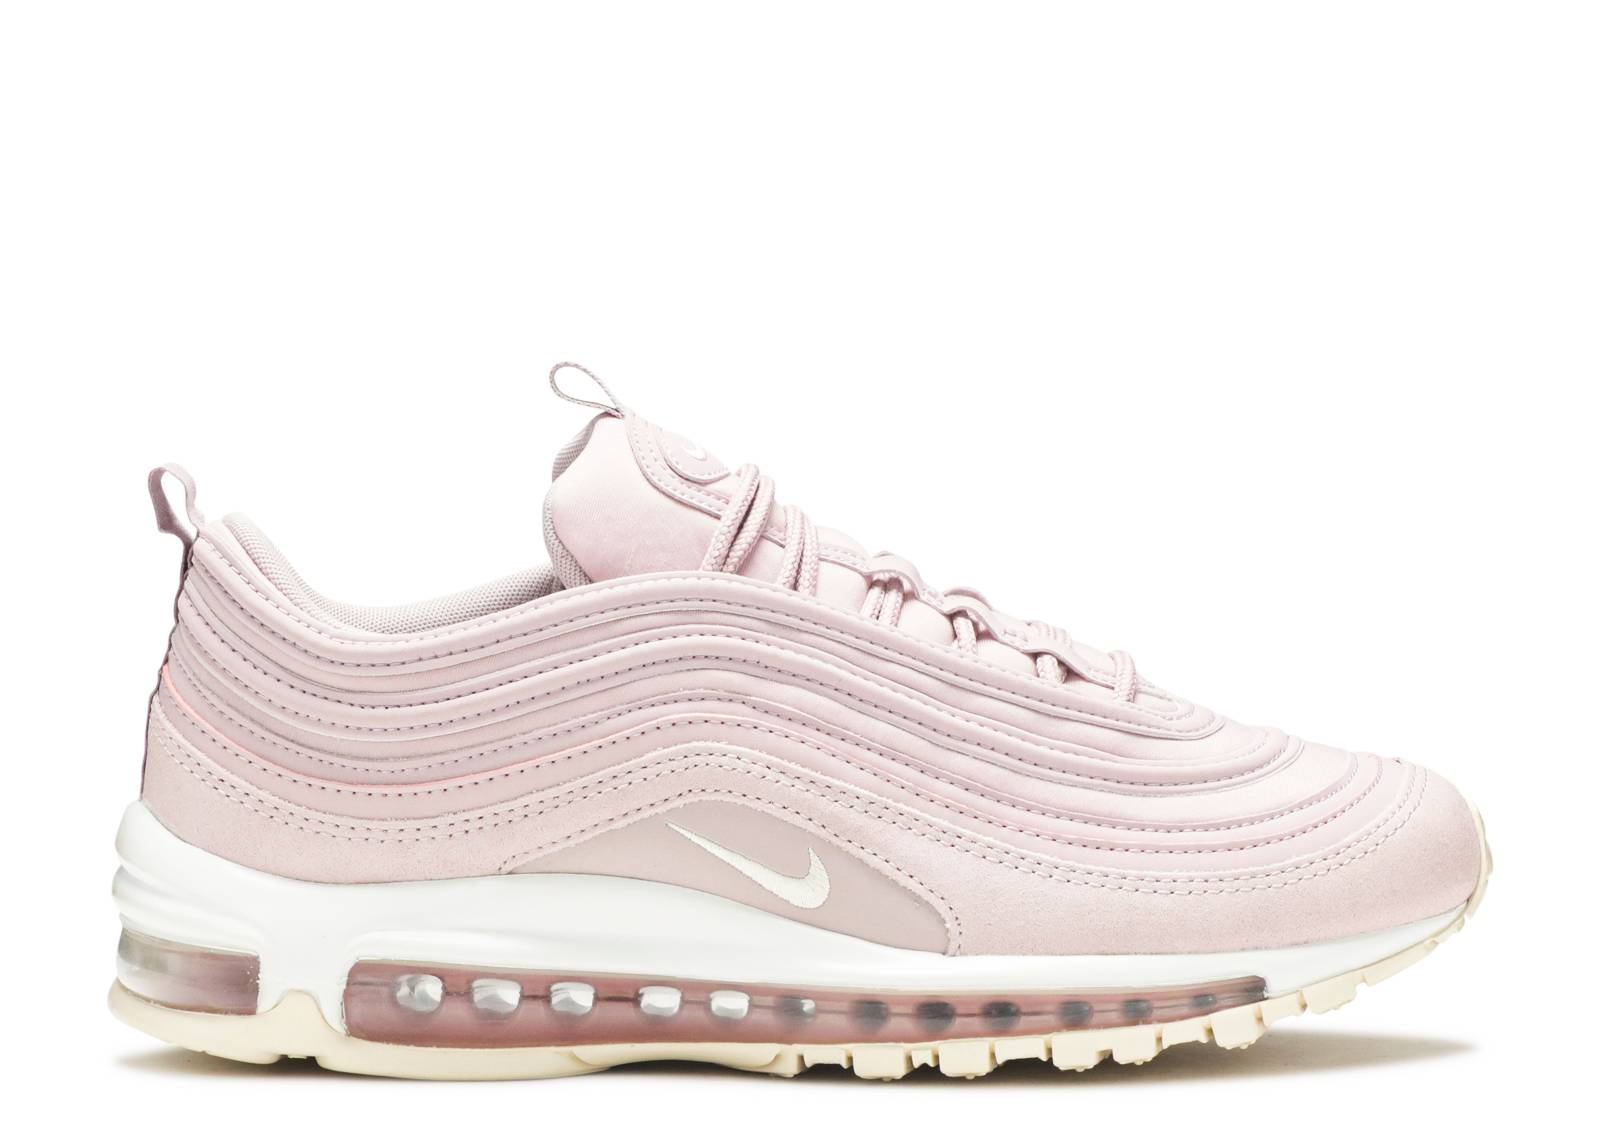 "Wmns Air Max 97 Premium 'Pink Scales' ""PINK SCALES"""